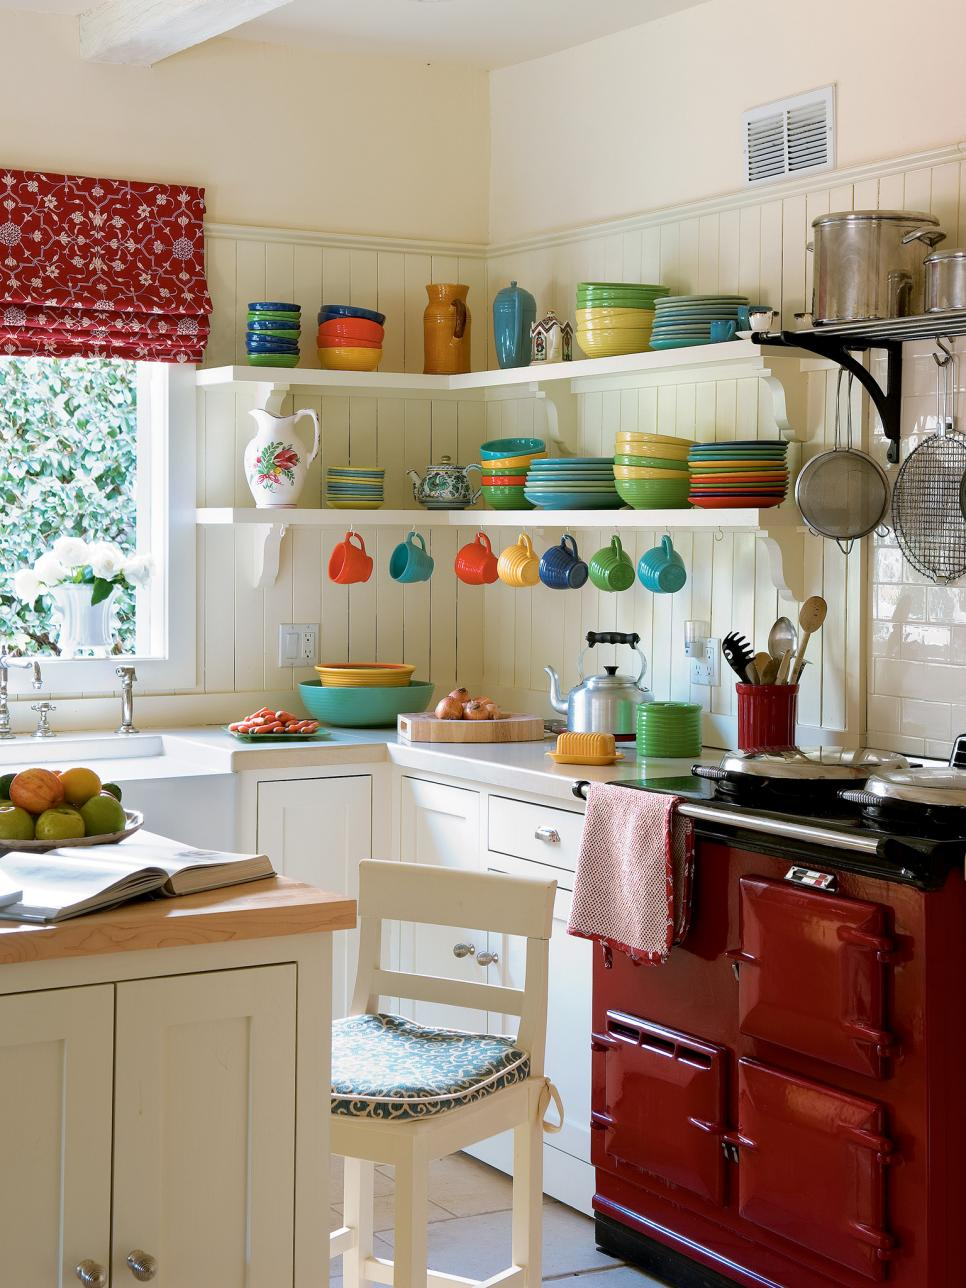 Remodeling Ideas For Small Kitchens pictures of small kitchen design ideas from hgtv | hgtv